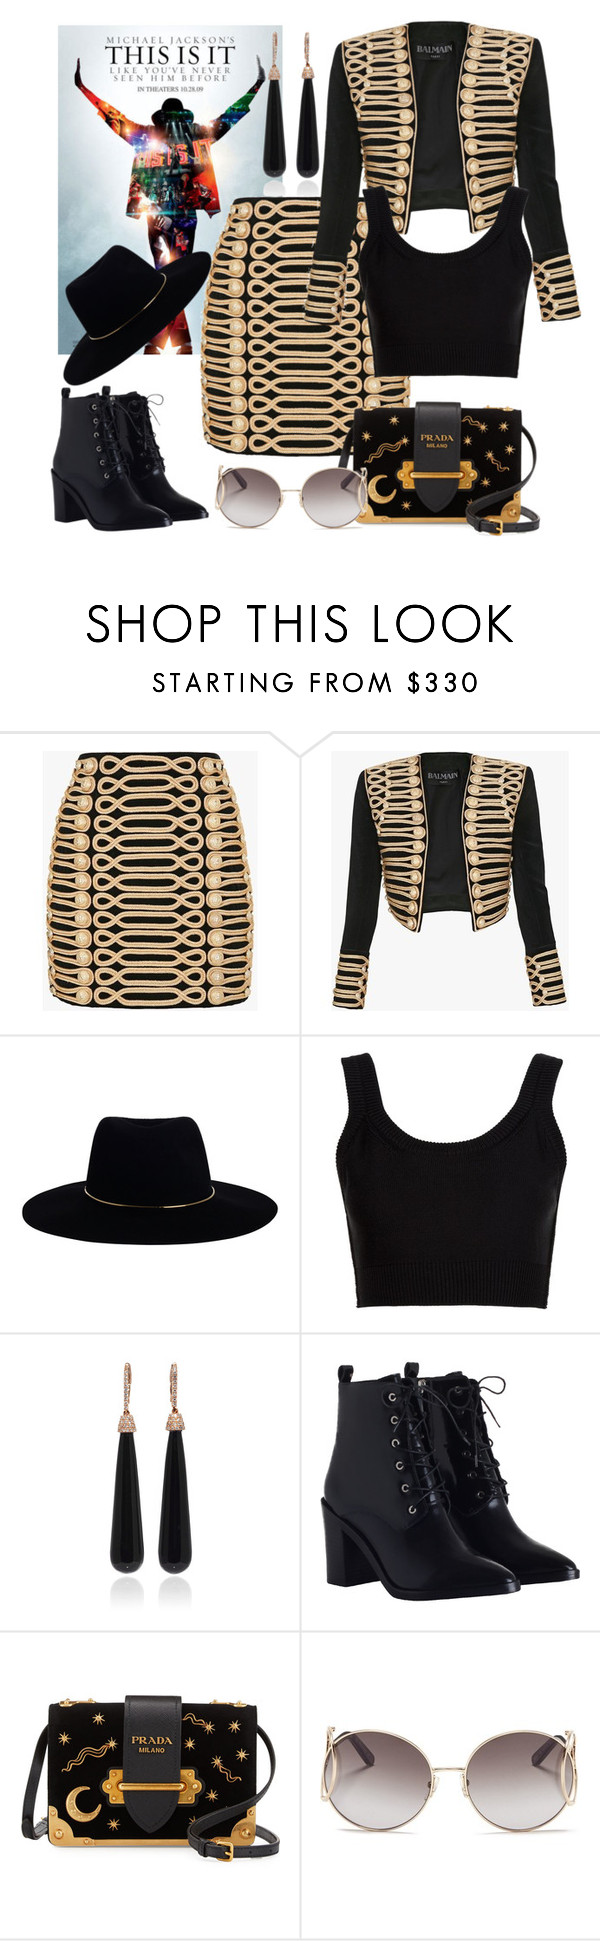 """""""It"""" by blorden on Polyvore featuring Balmain, Zimmermann, Calvin Klein Collection, SUSAN FOSTER, Prada and Chloé"""